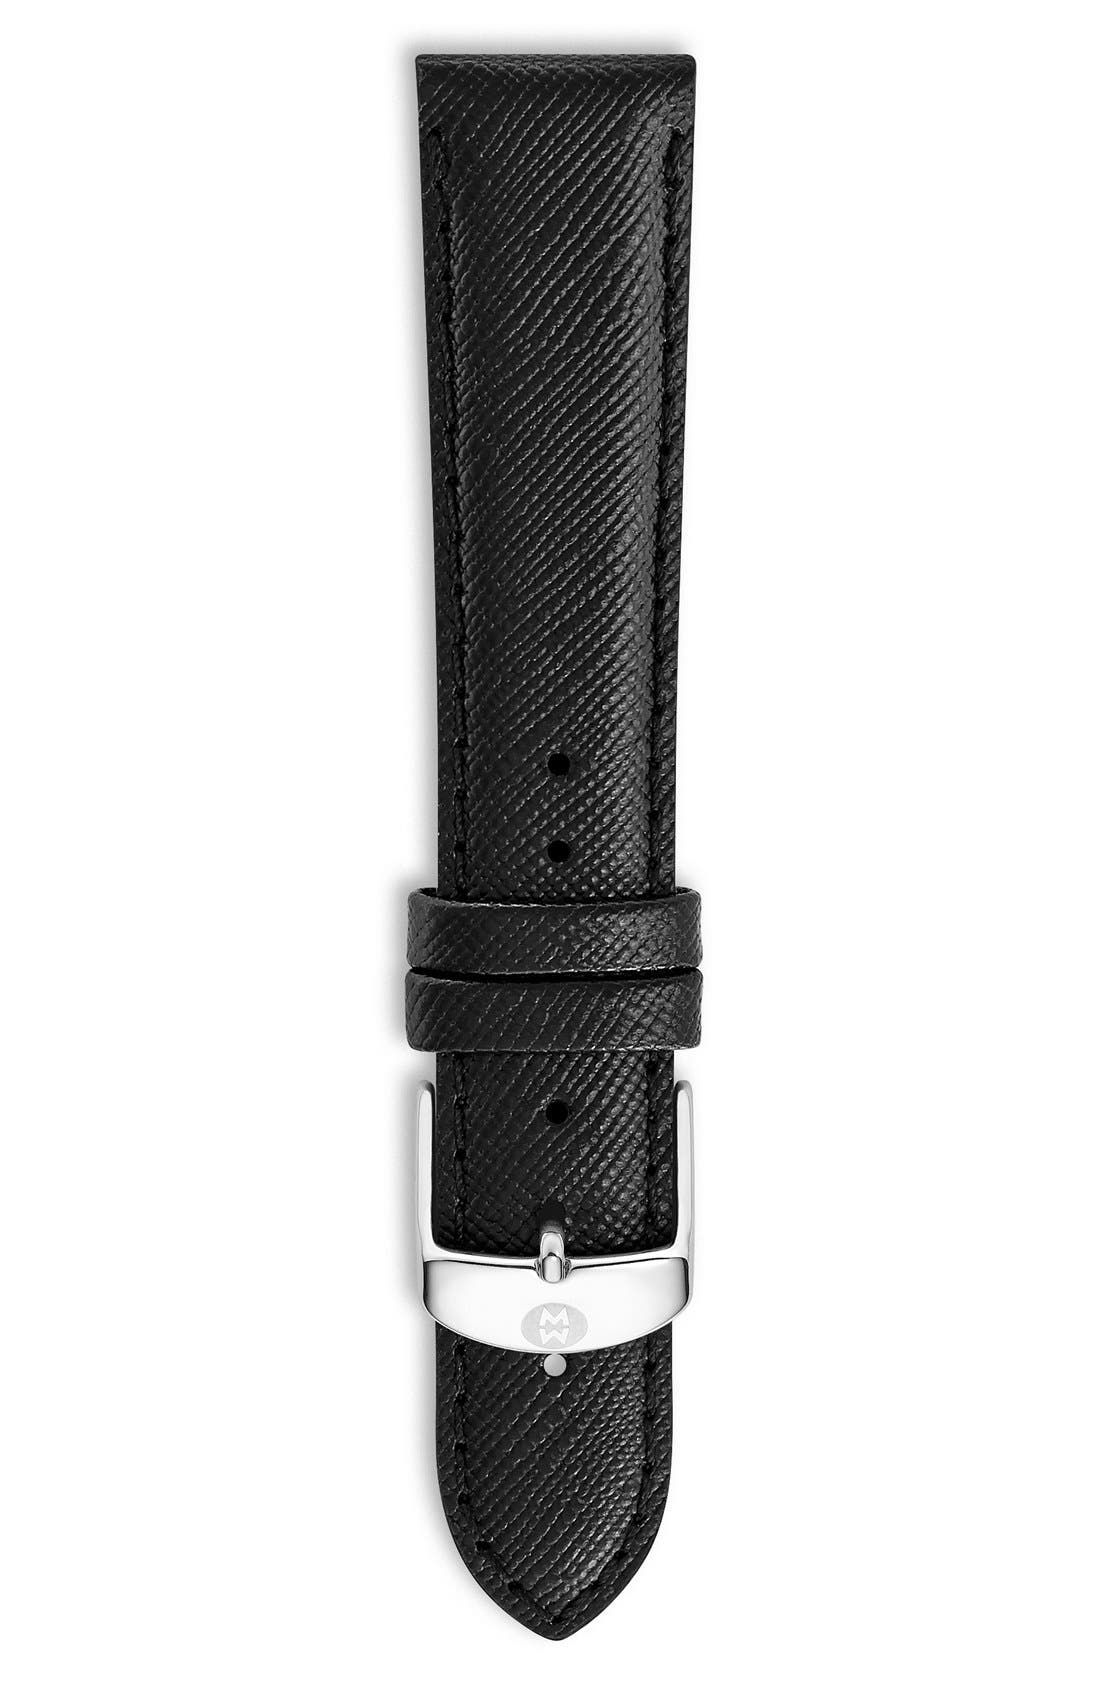 18mm Saffiano Leather Watch Strap,                         Main,                         color, Jet Black